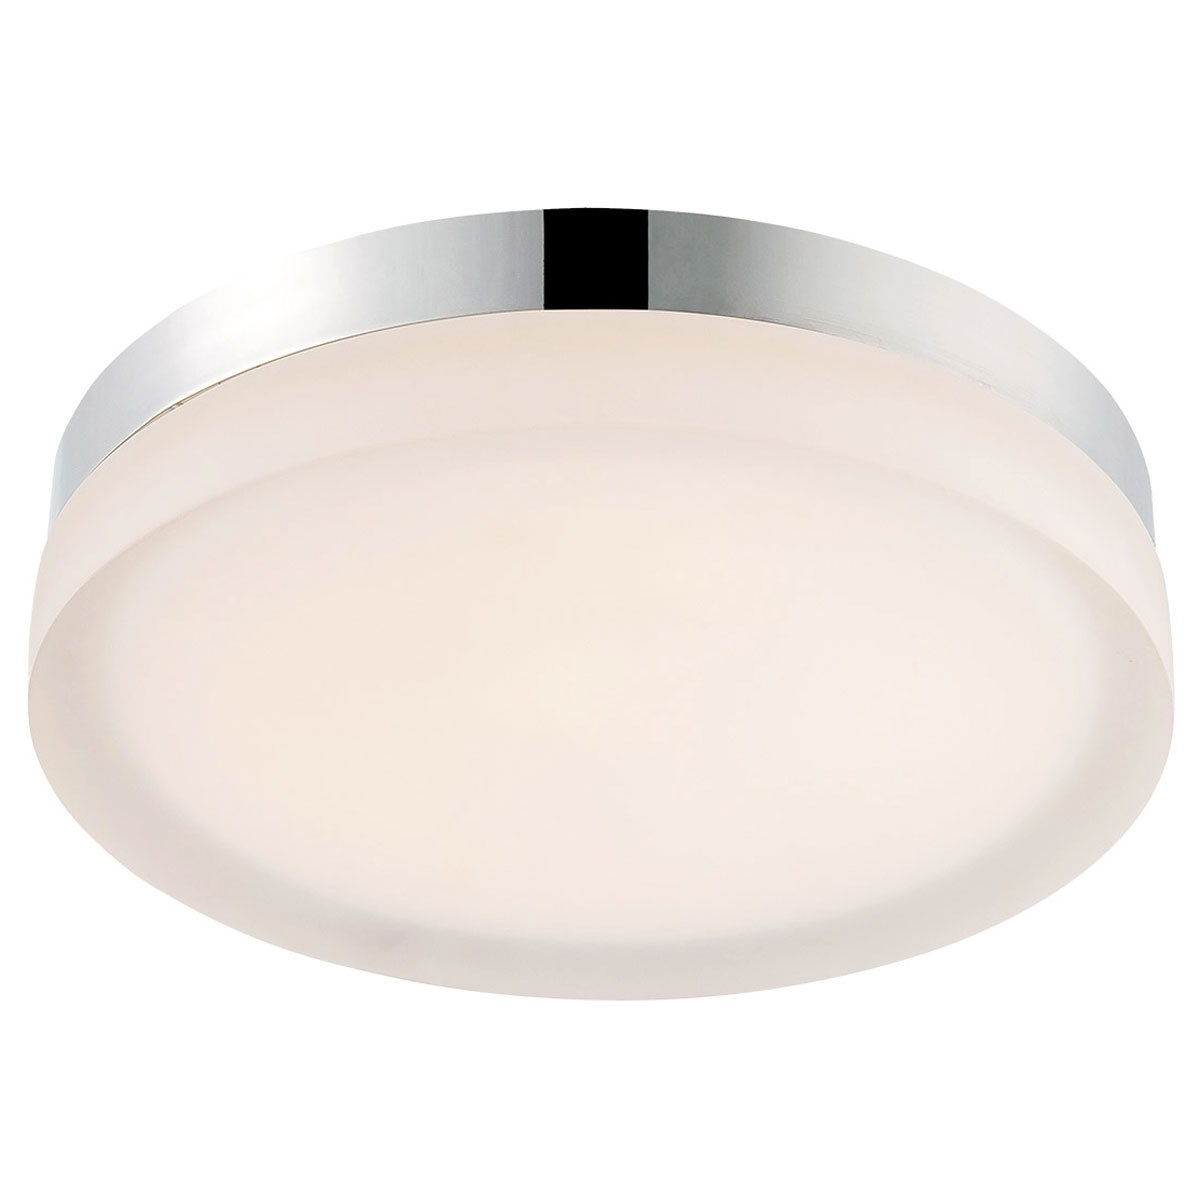 Lights Ceiling Slice Round Wall Ceiling Light By Dweled By Wac Lighting Fm 4109 30 Ch